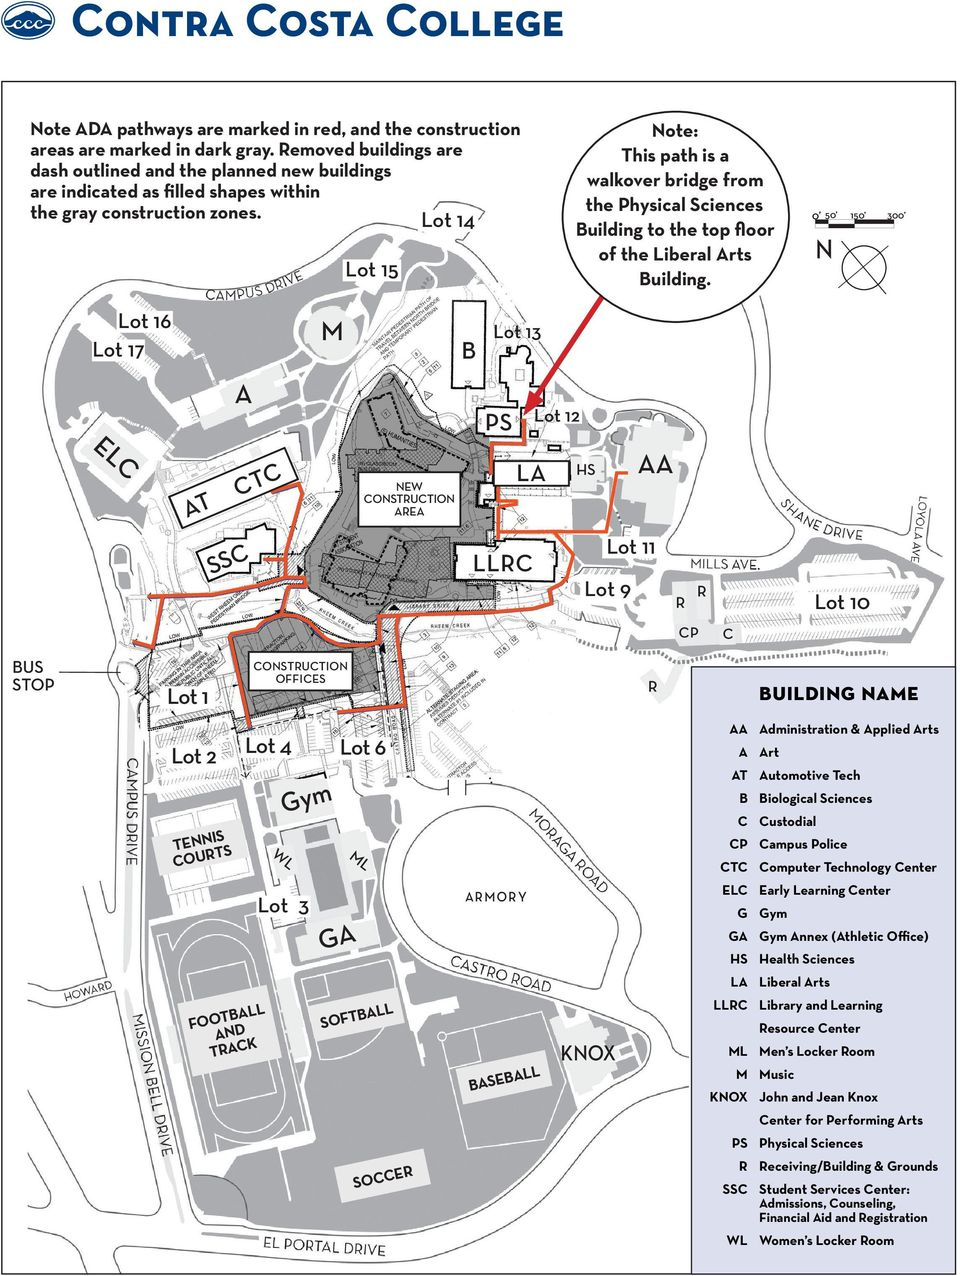 Lot 14 Note: This path is a walkover bridge from the Physical Sciences Building to the top floor of the Liberal Arts Building.